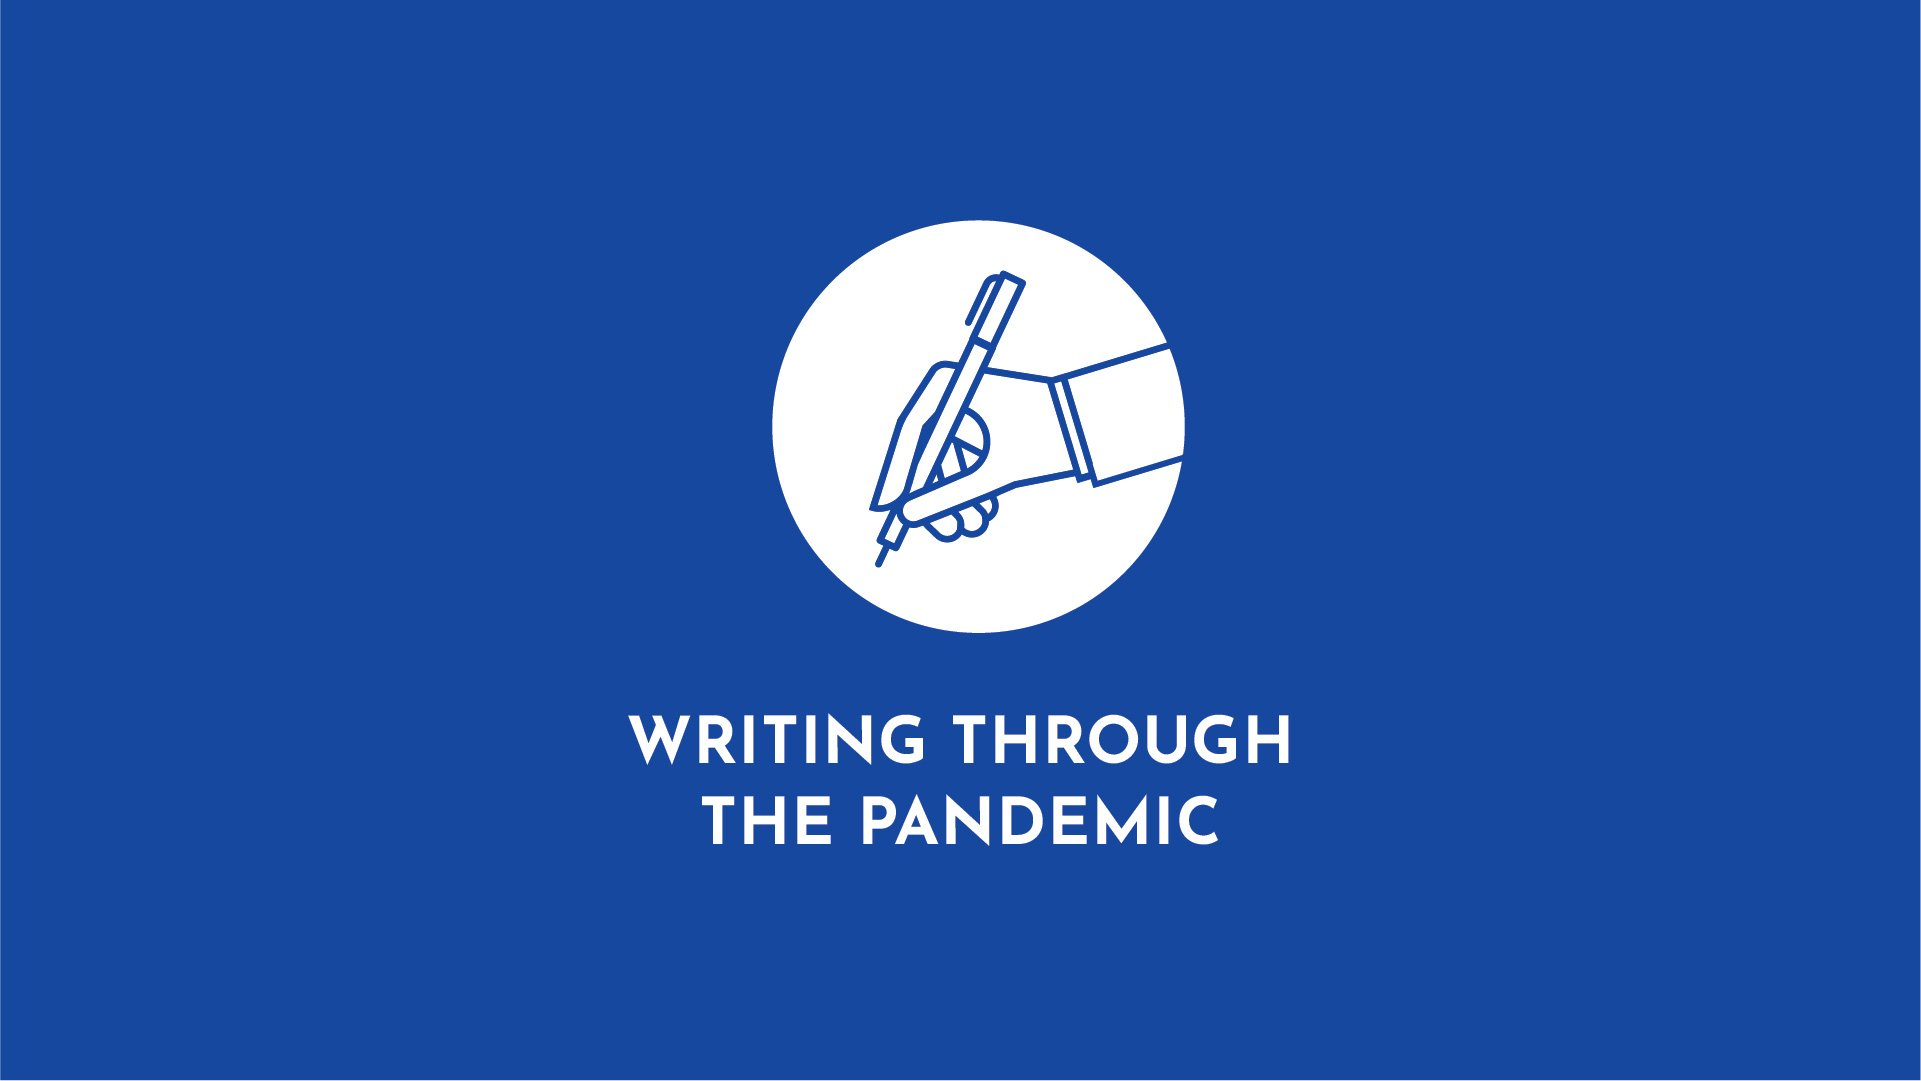 Writing Through the Pandemic: Poet Kyle Dargan on Coronavirus's Painful Truths